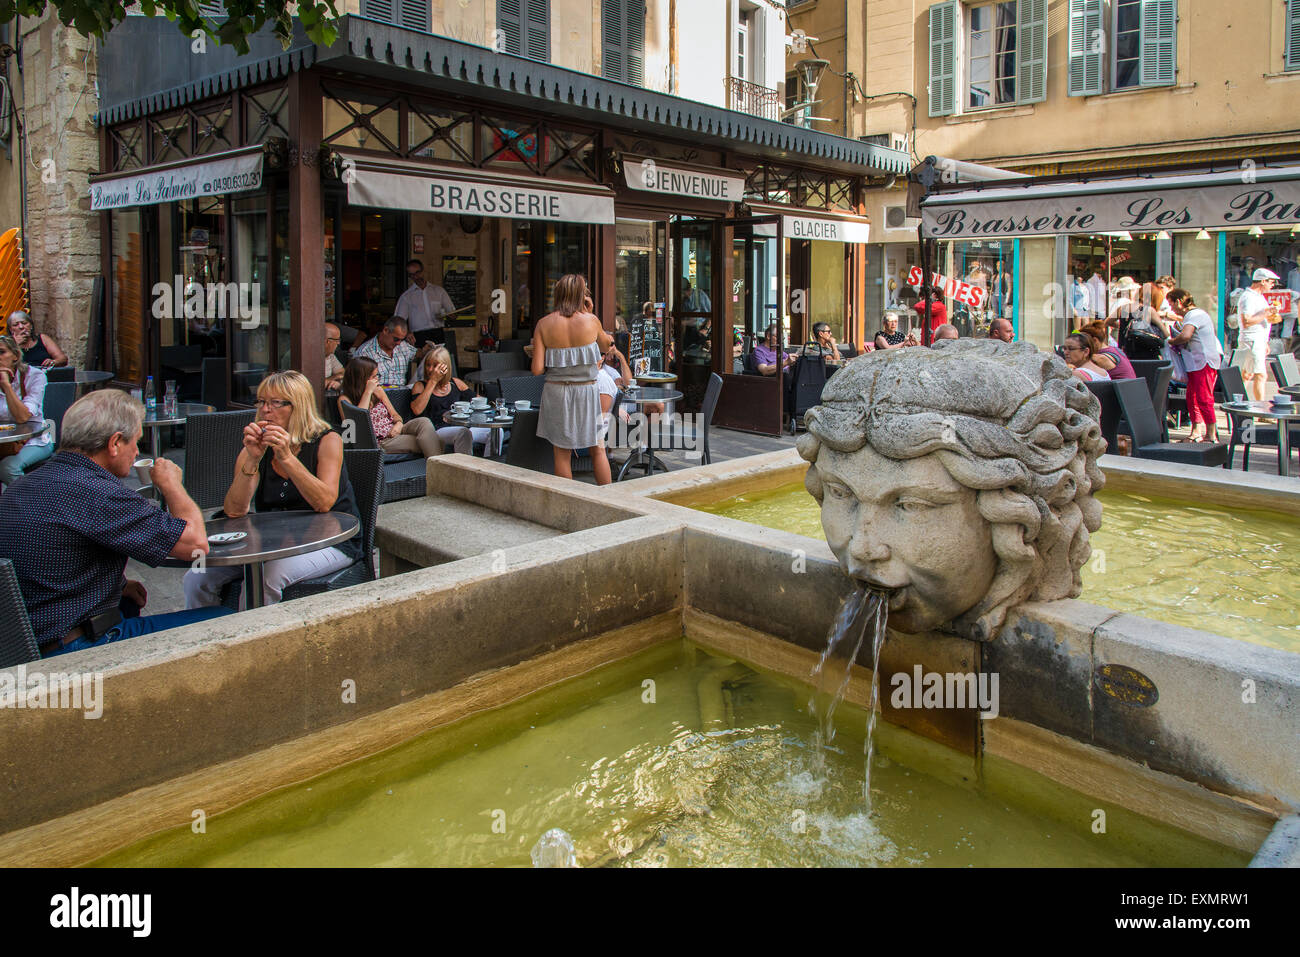 Brasserie cafe restaurant with people seated outside at tables, Carpentras, Provence, France - Stock Image